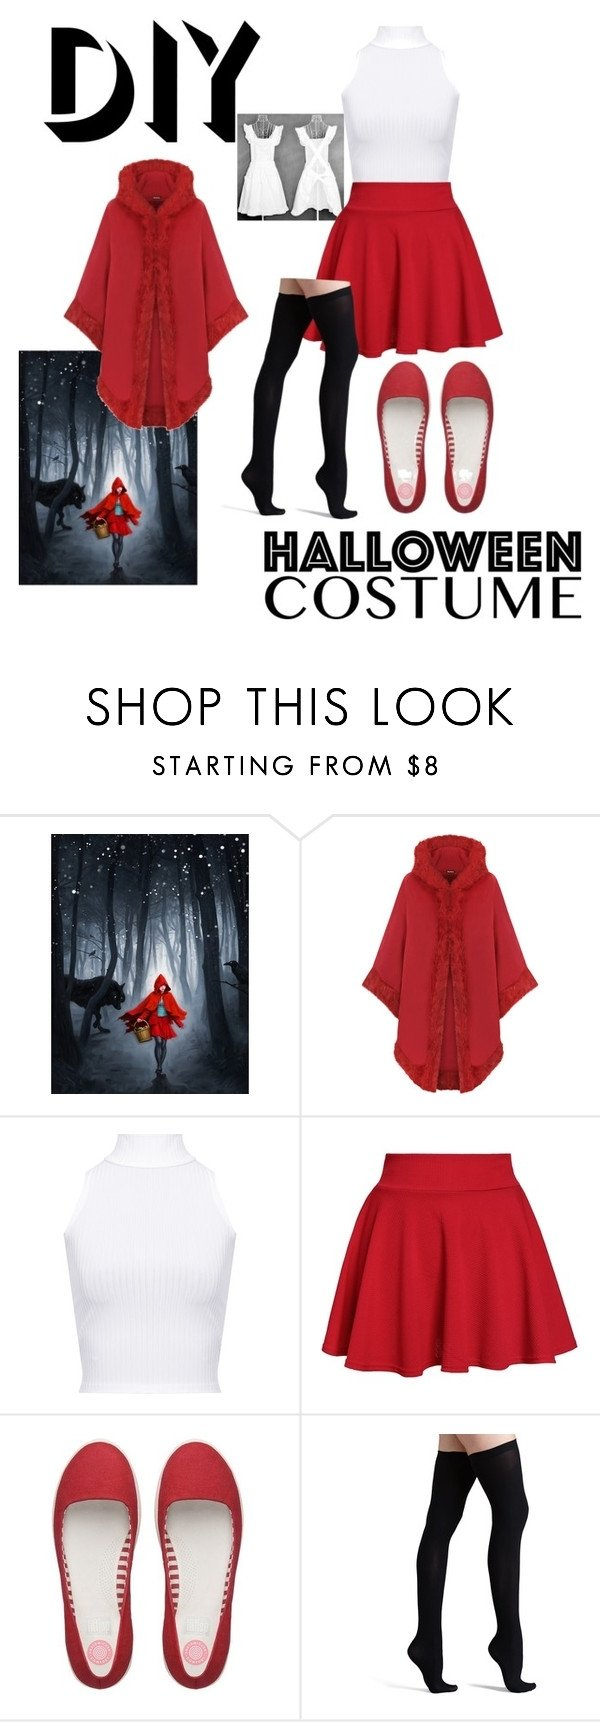 10 Pretty Little Red Riding Hood Costume Ideas diy little red riding hood costume fitflop red riding hood and hoods 2021